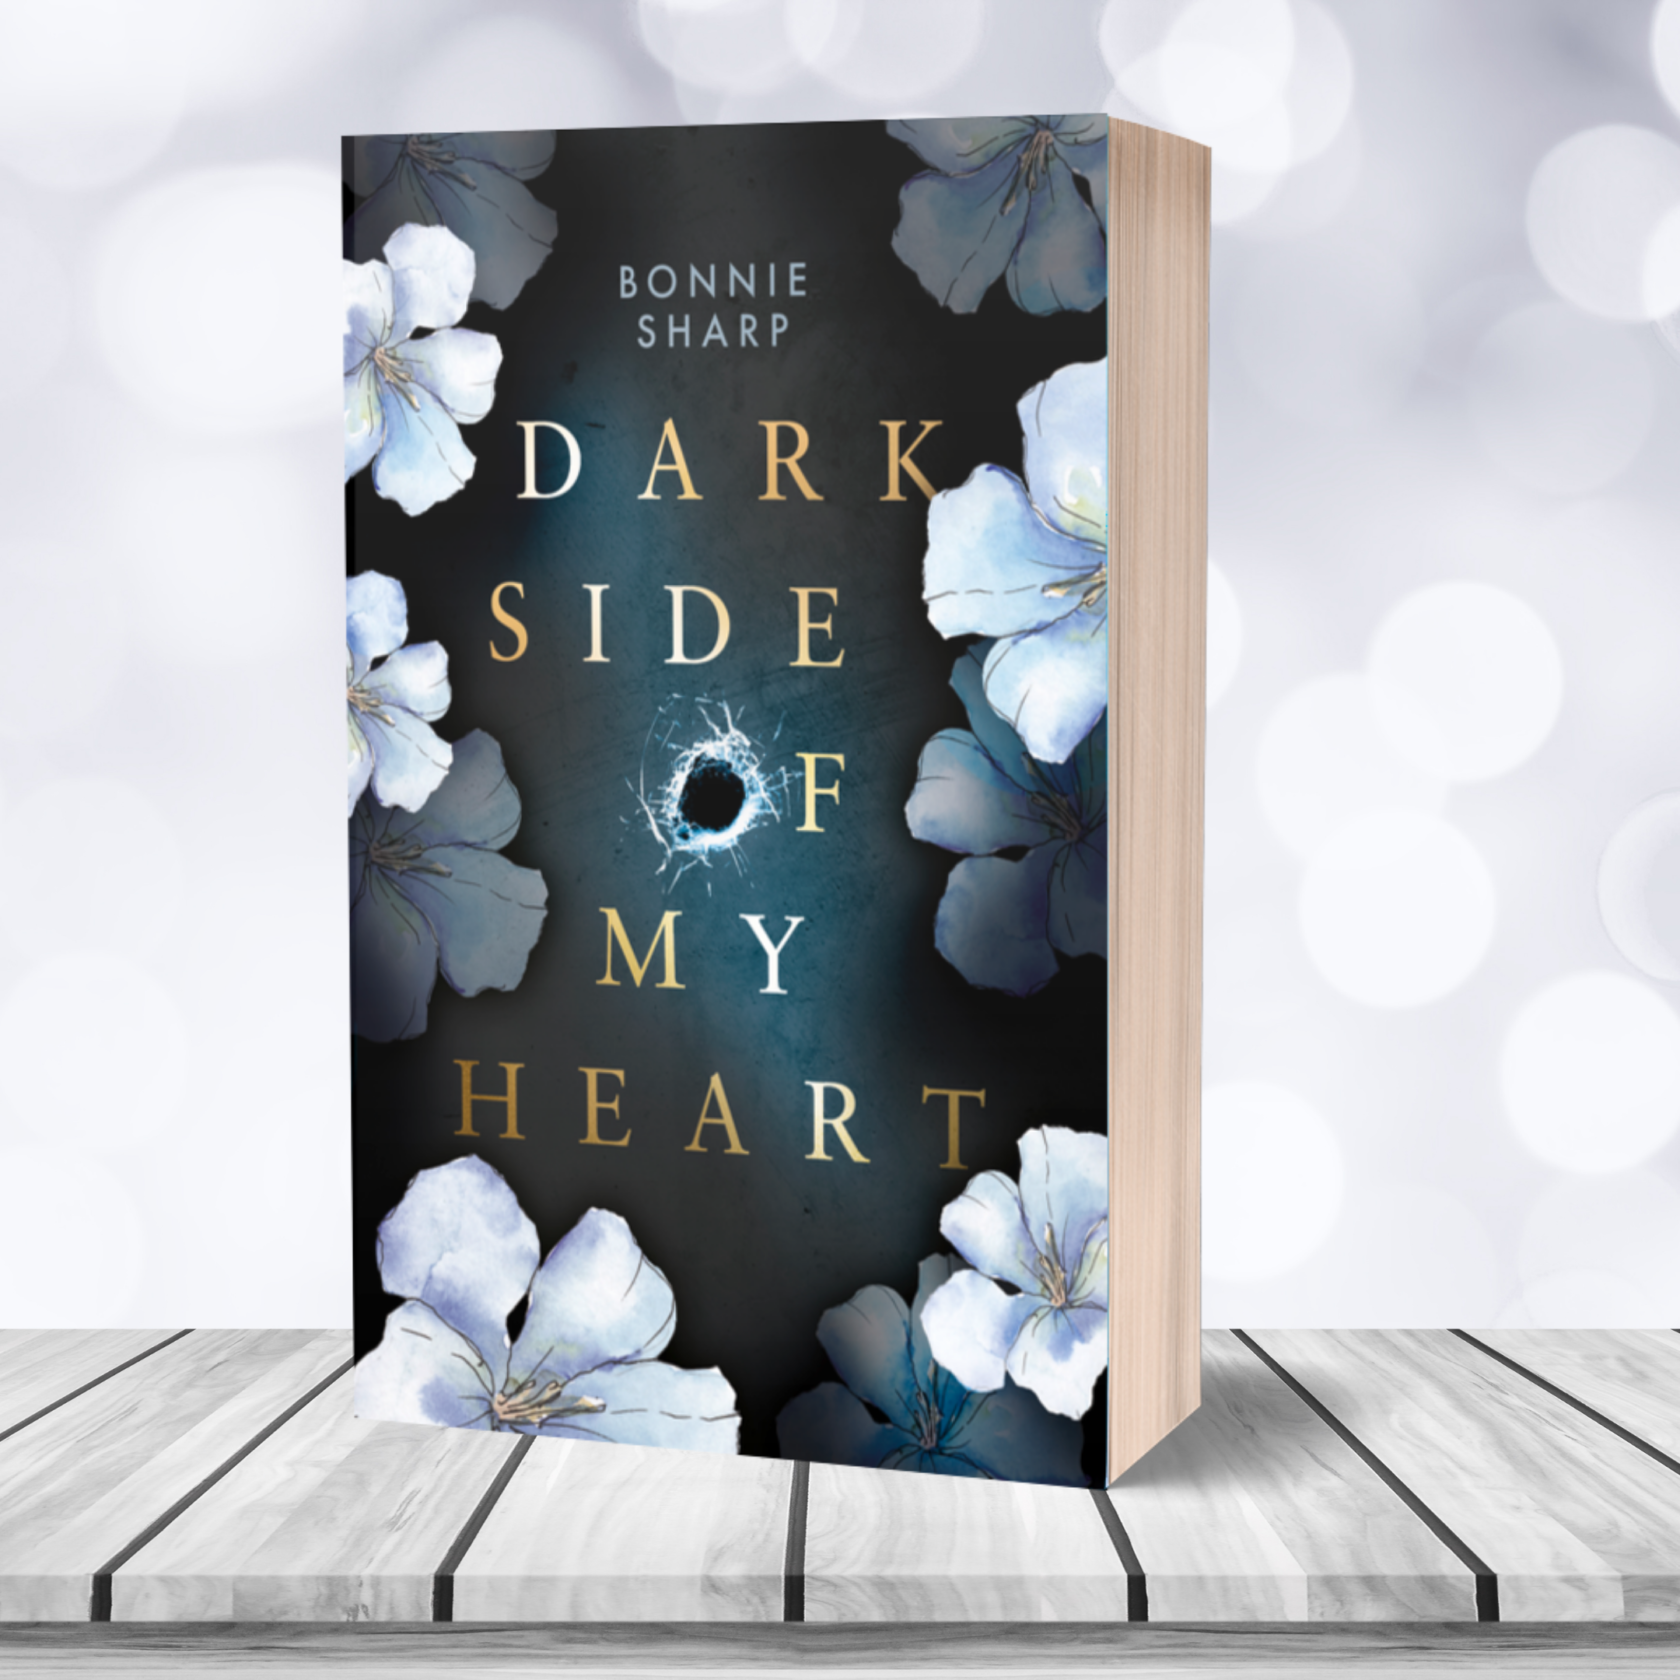 "Taschenbuch Bonnie Sharp ""Dark side of my heart"" – signiert"